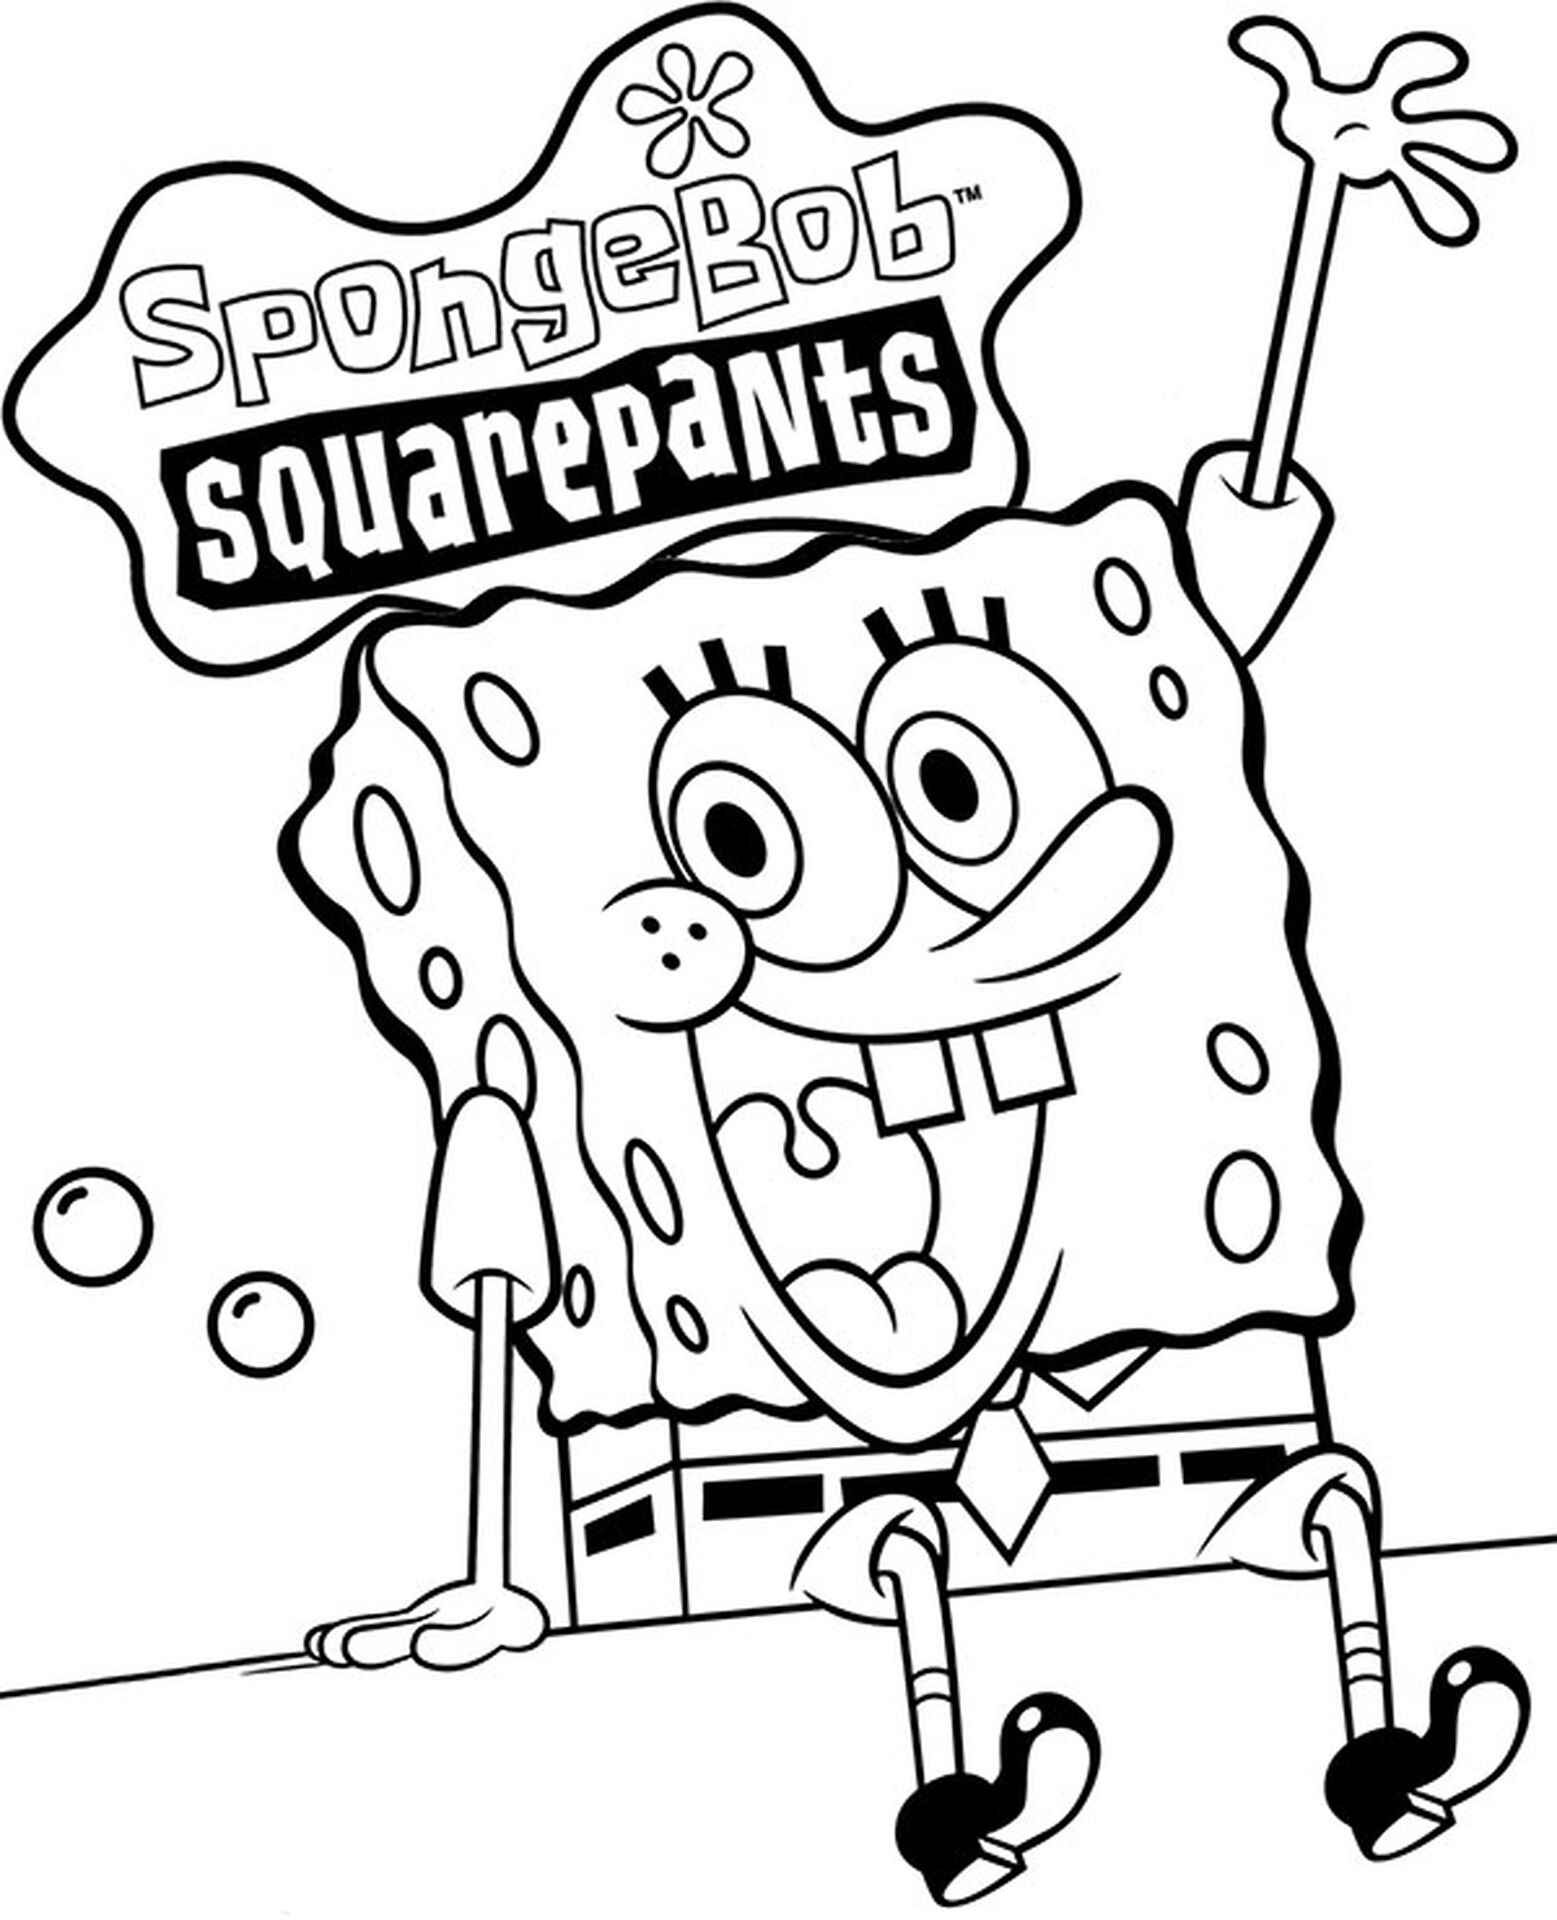 Spongebob Welcomes With Logo Coloring Page